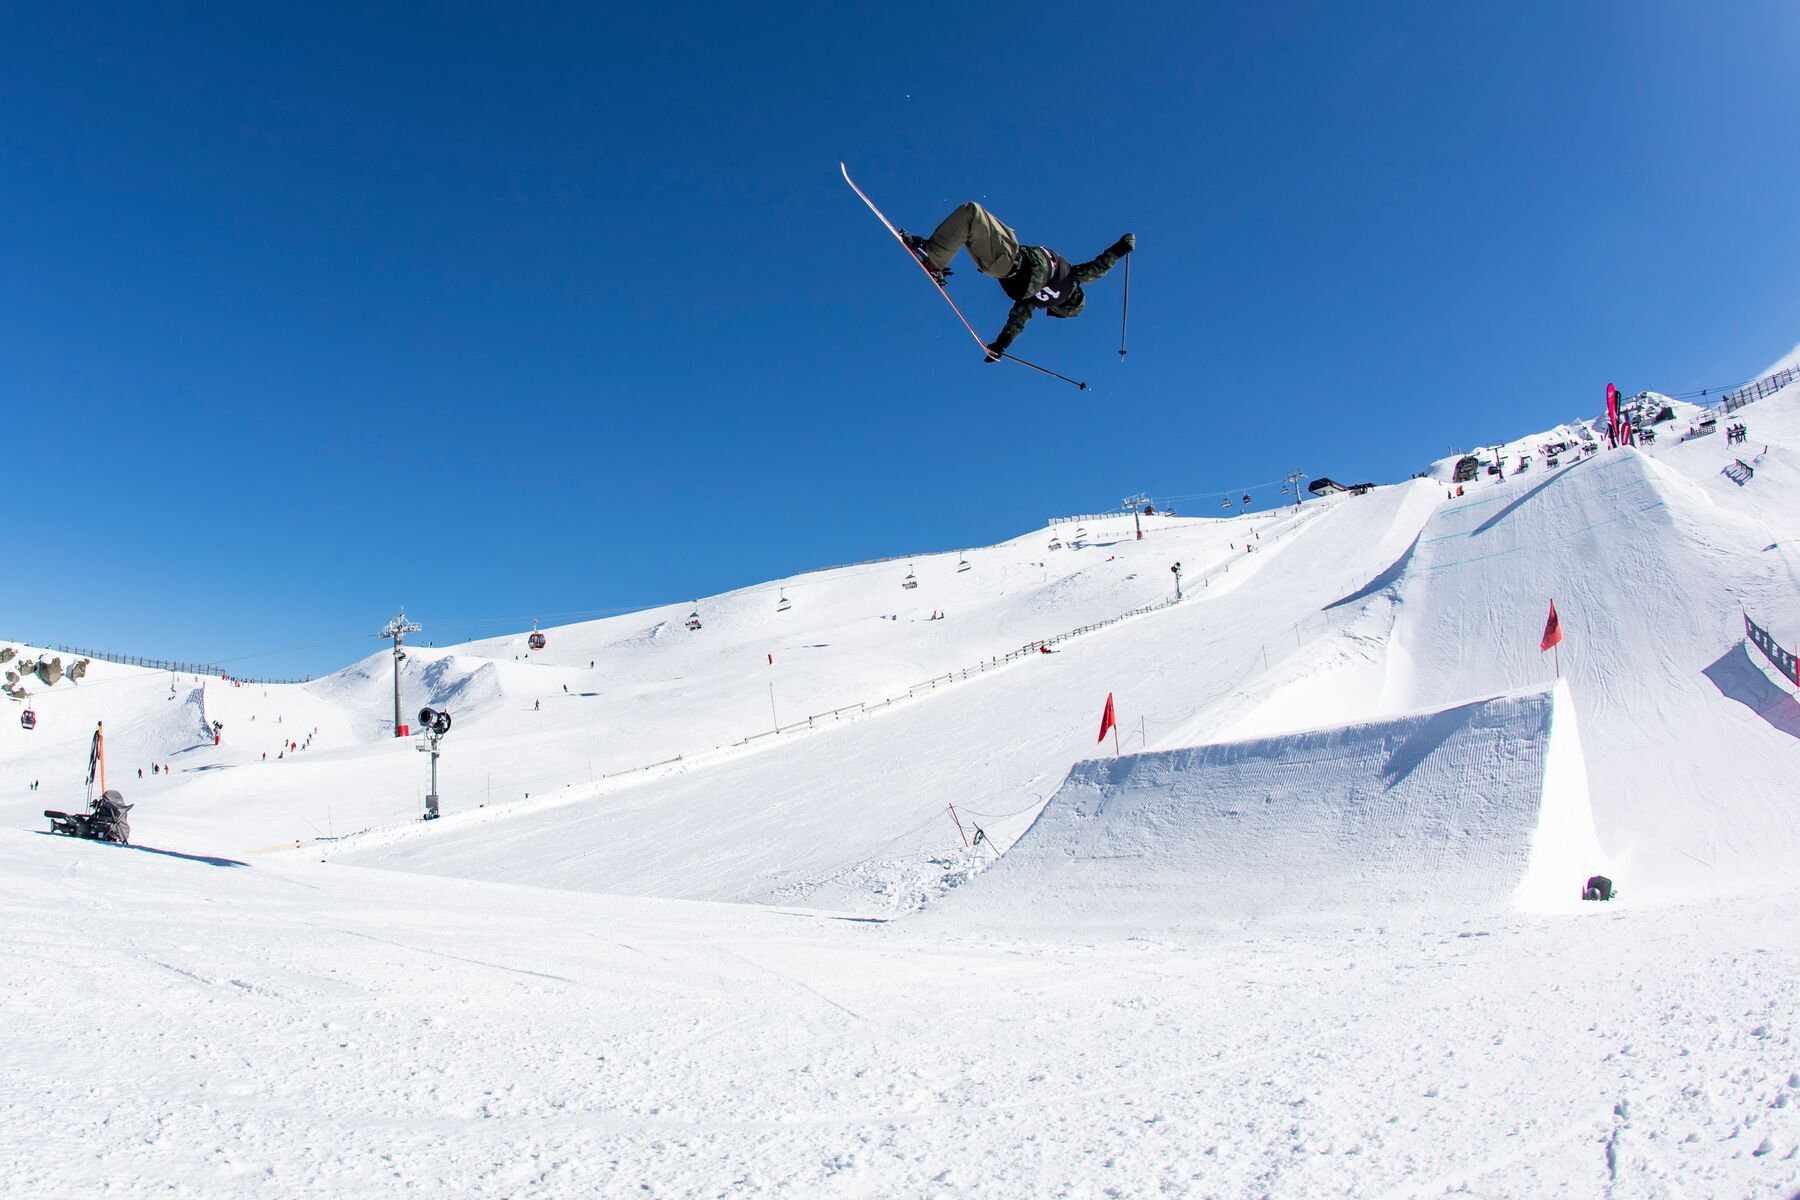 FIS ANC Freeski & Snowboard Slopestyle creates World Cup opportunity for Kiwi and Australian Athletes